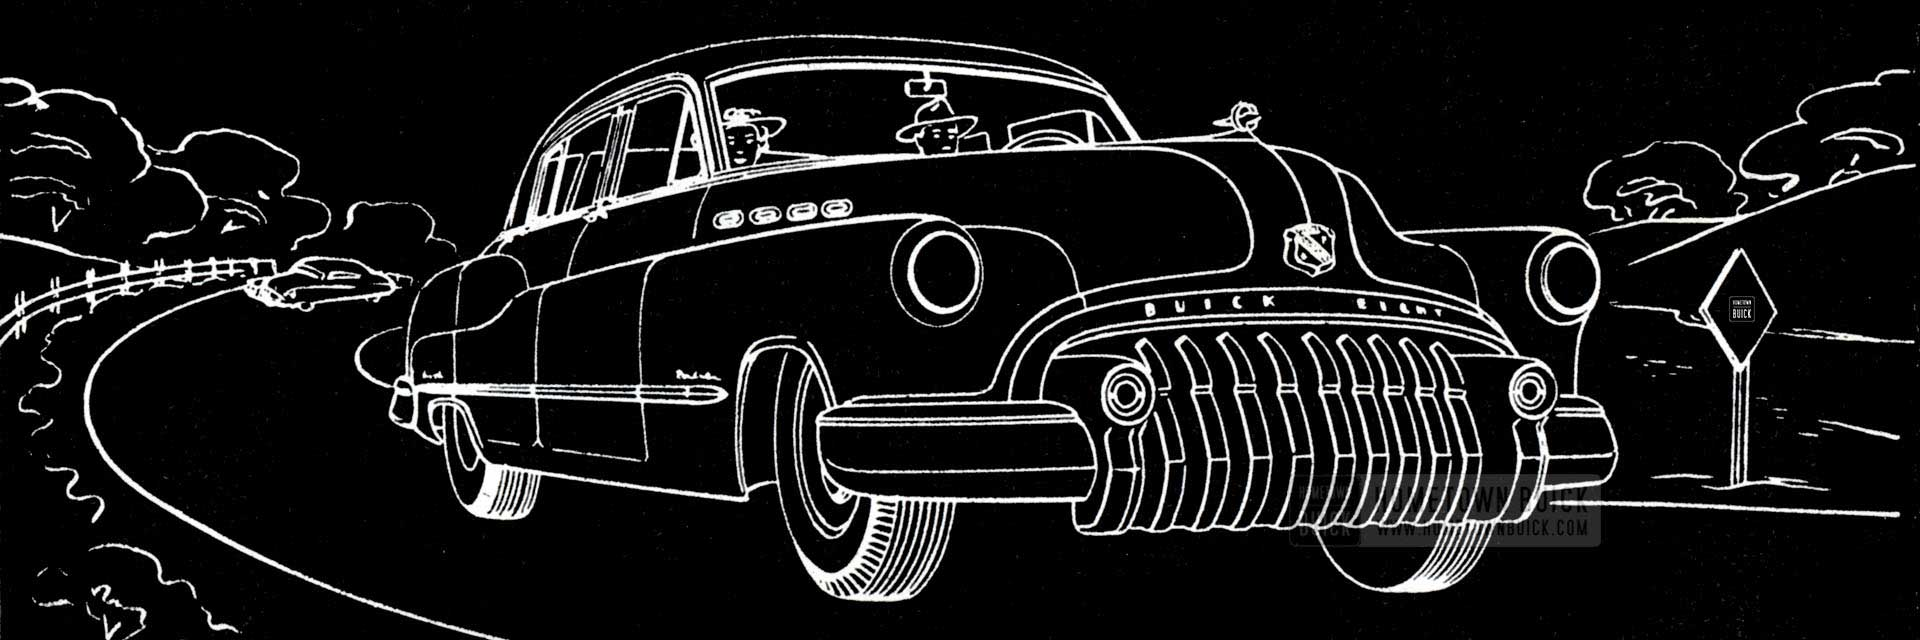 1950 Buick Black and White